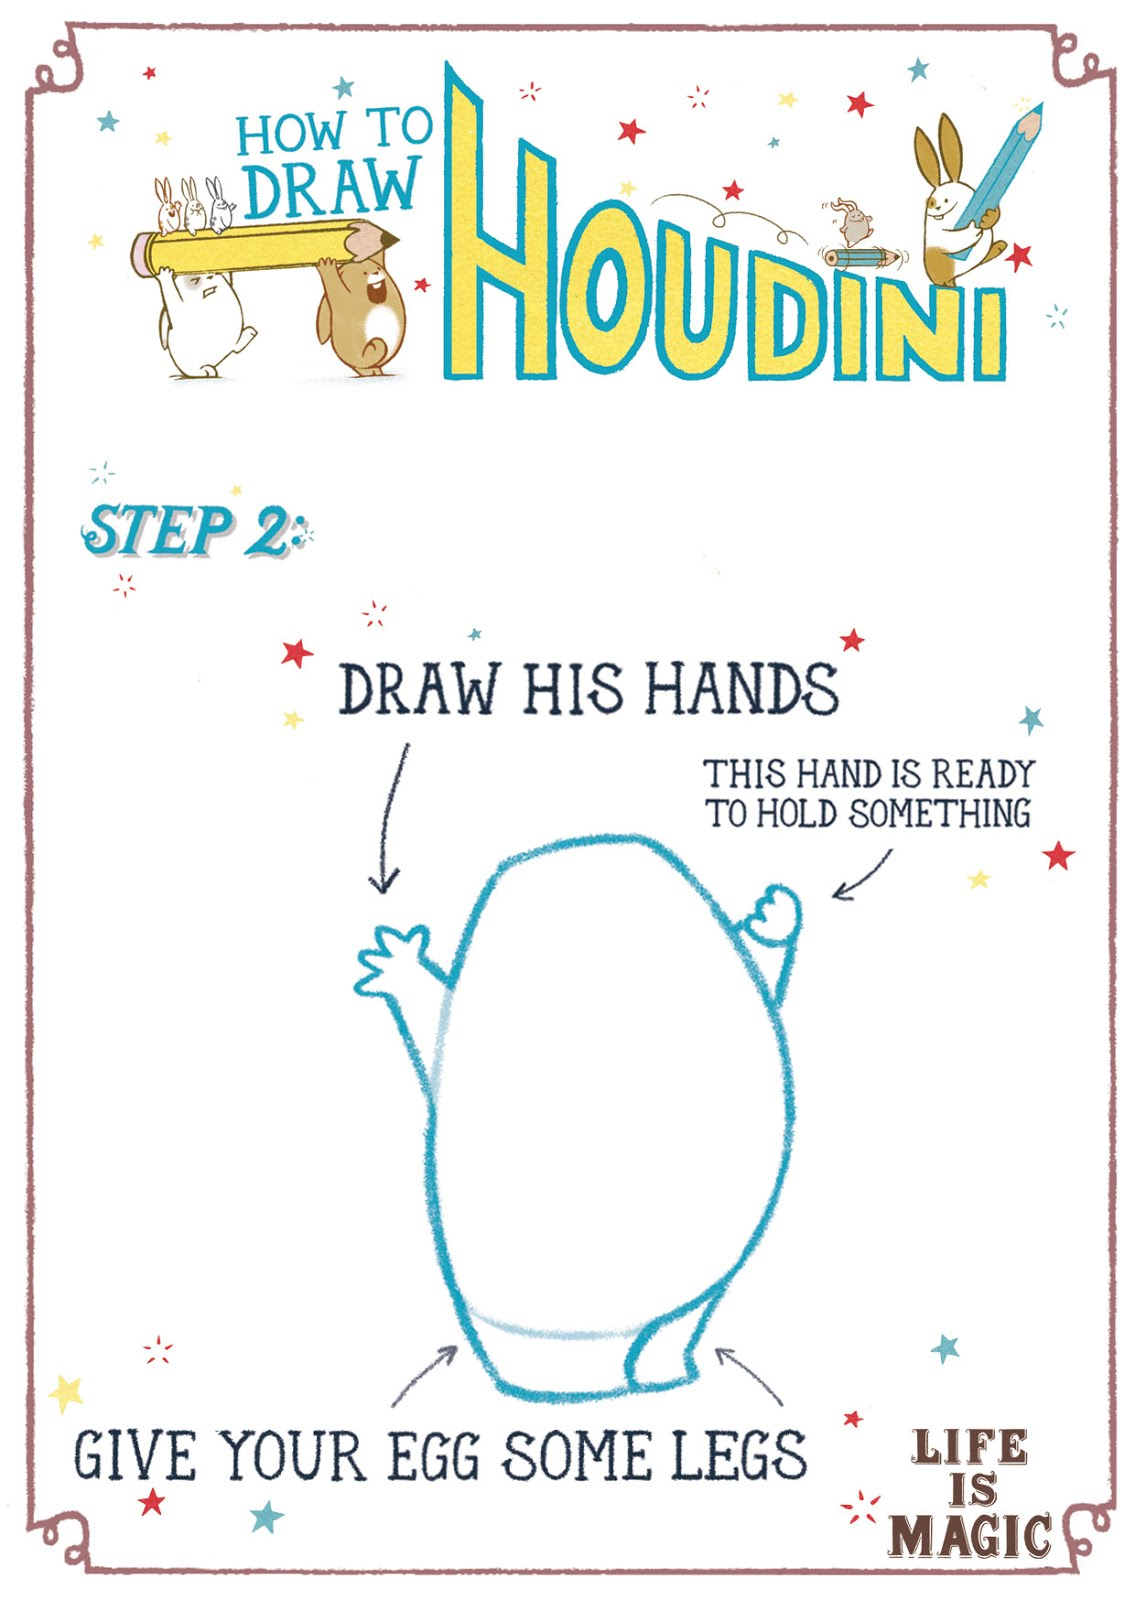 How to draw a BUNNY!